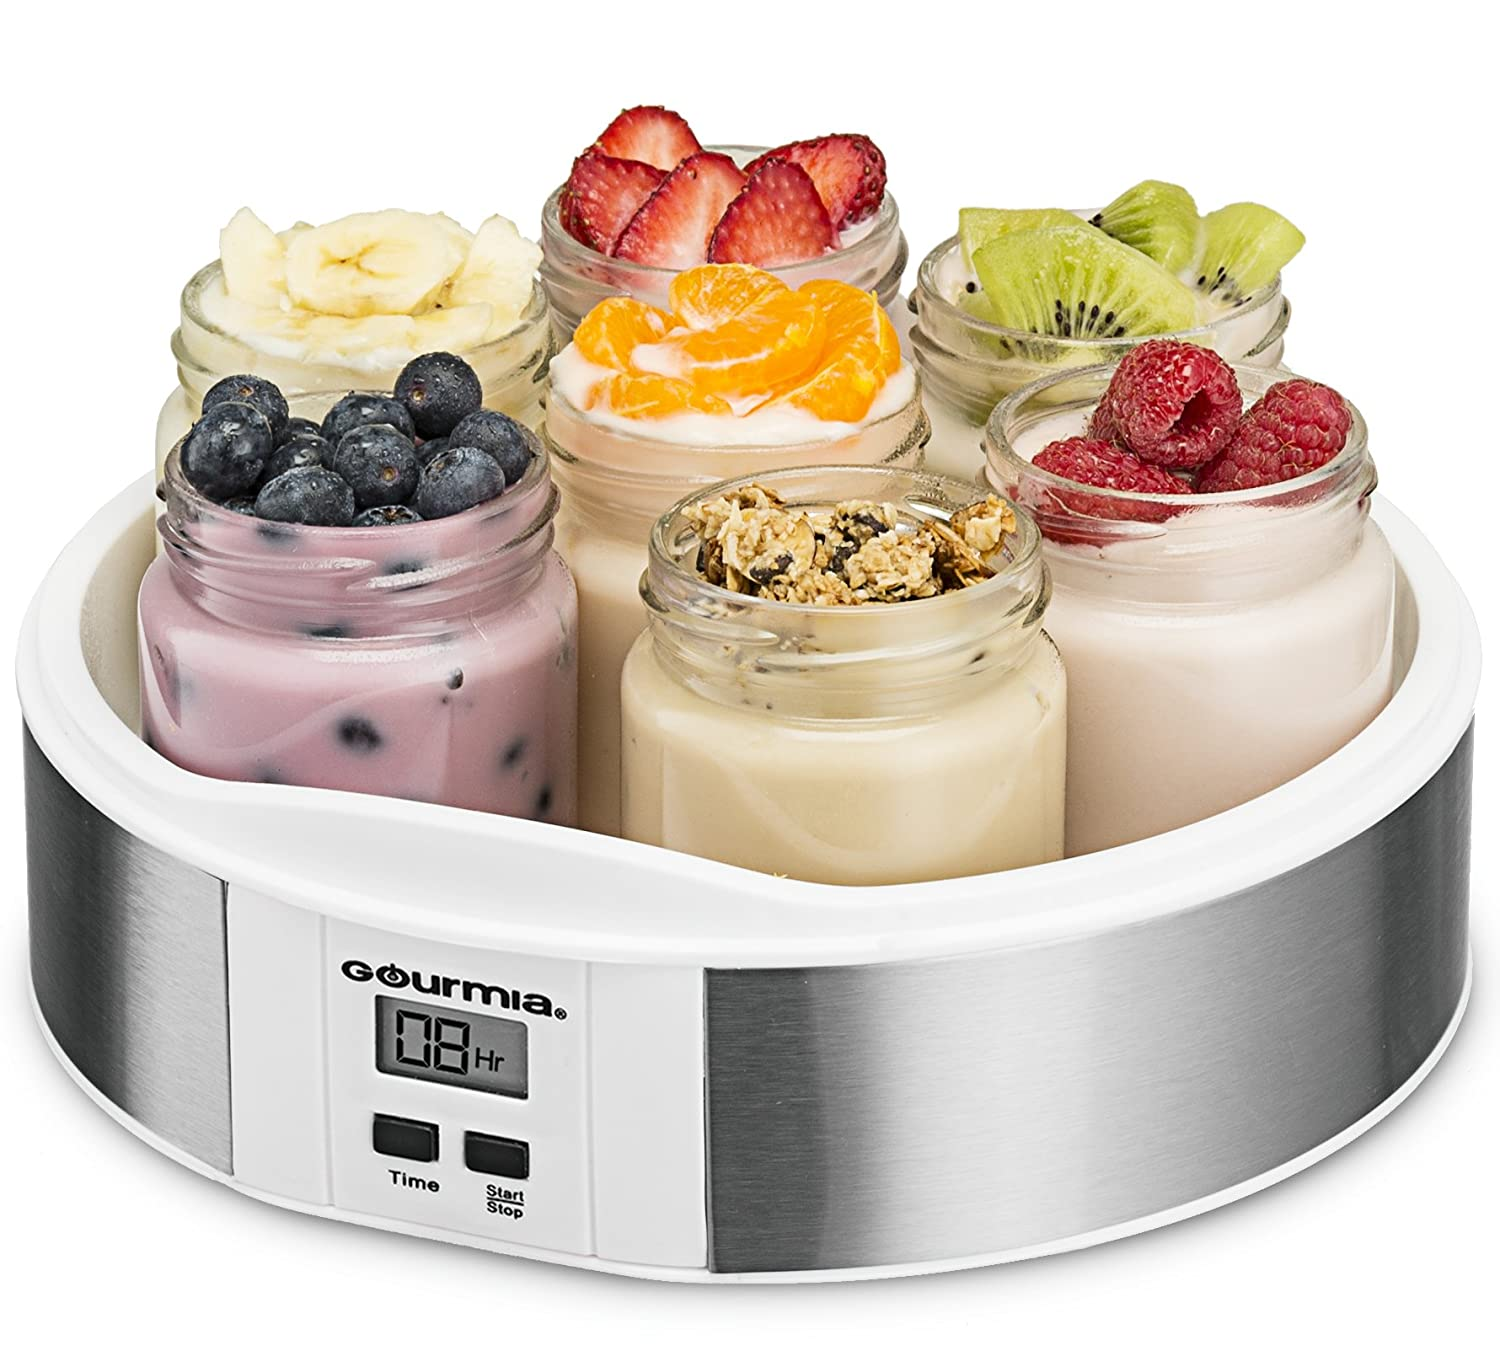 Gourmia GYM1620 Digital Yogurt Maker – 7 Glass 6 oz Jars – Custom Flavor Thickness – Timer Control Display – BPA-Free – Bonus Recipe Book